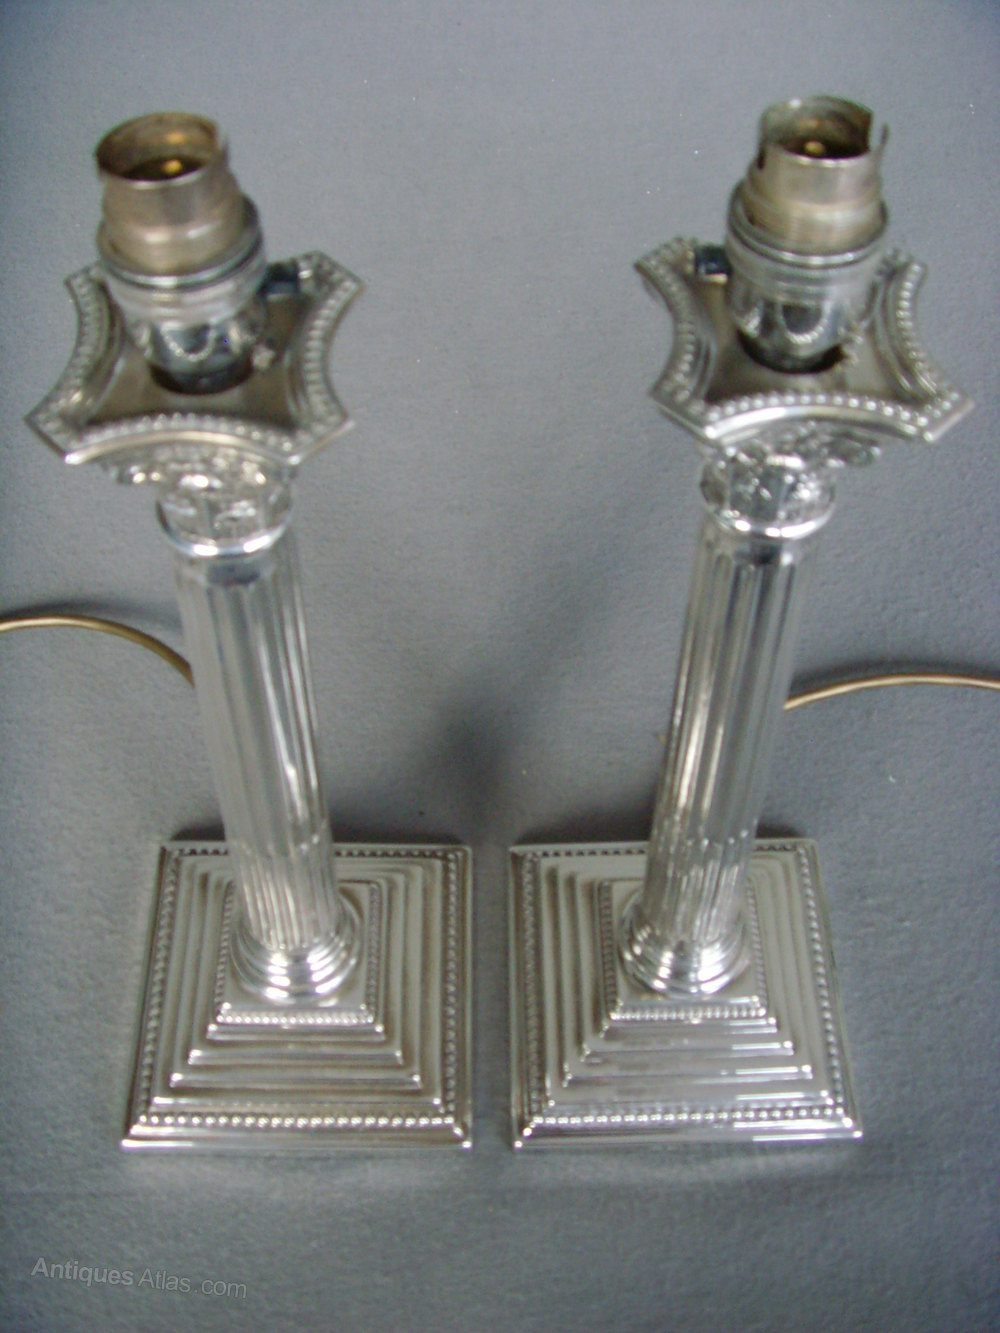 Antiques atlas pair silver plated corinthian column lamp bases pair table lamp bases corinthian column geotapseo Choice Image